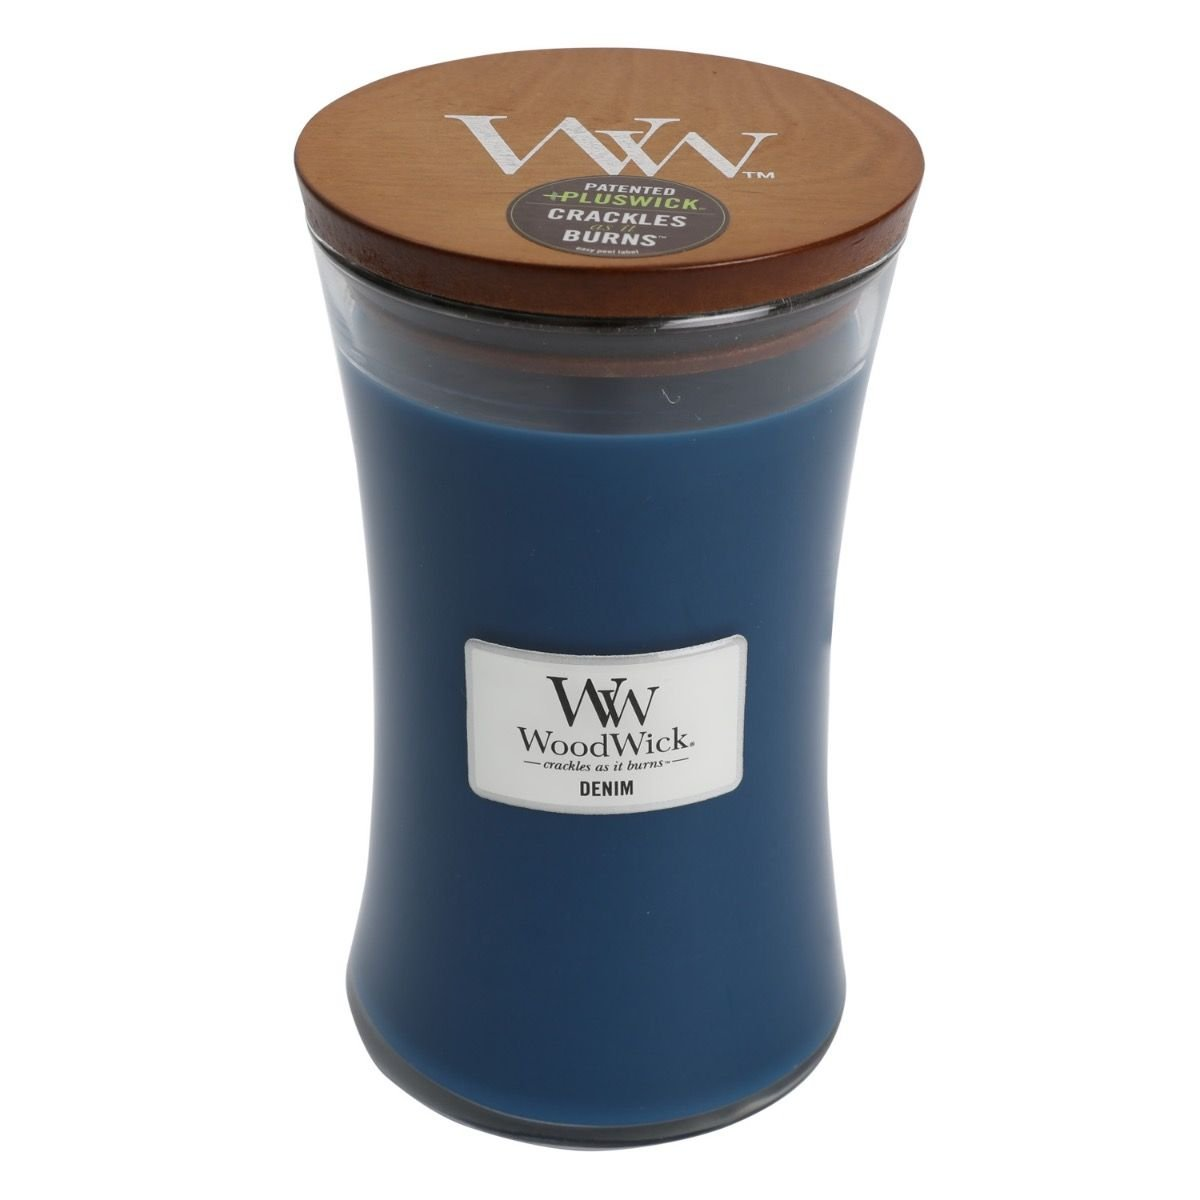 NEW DENIM WoodWick Glass Jar Scented Candle, Large 22 oz.